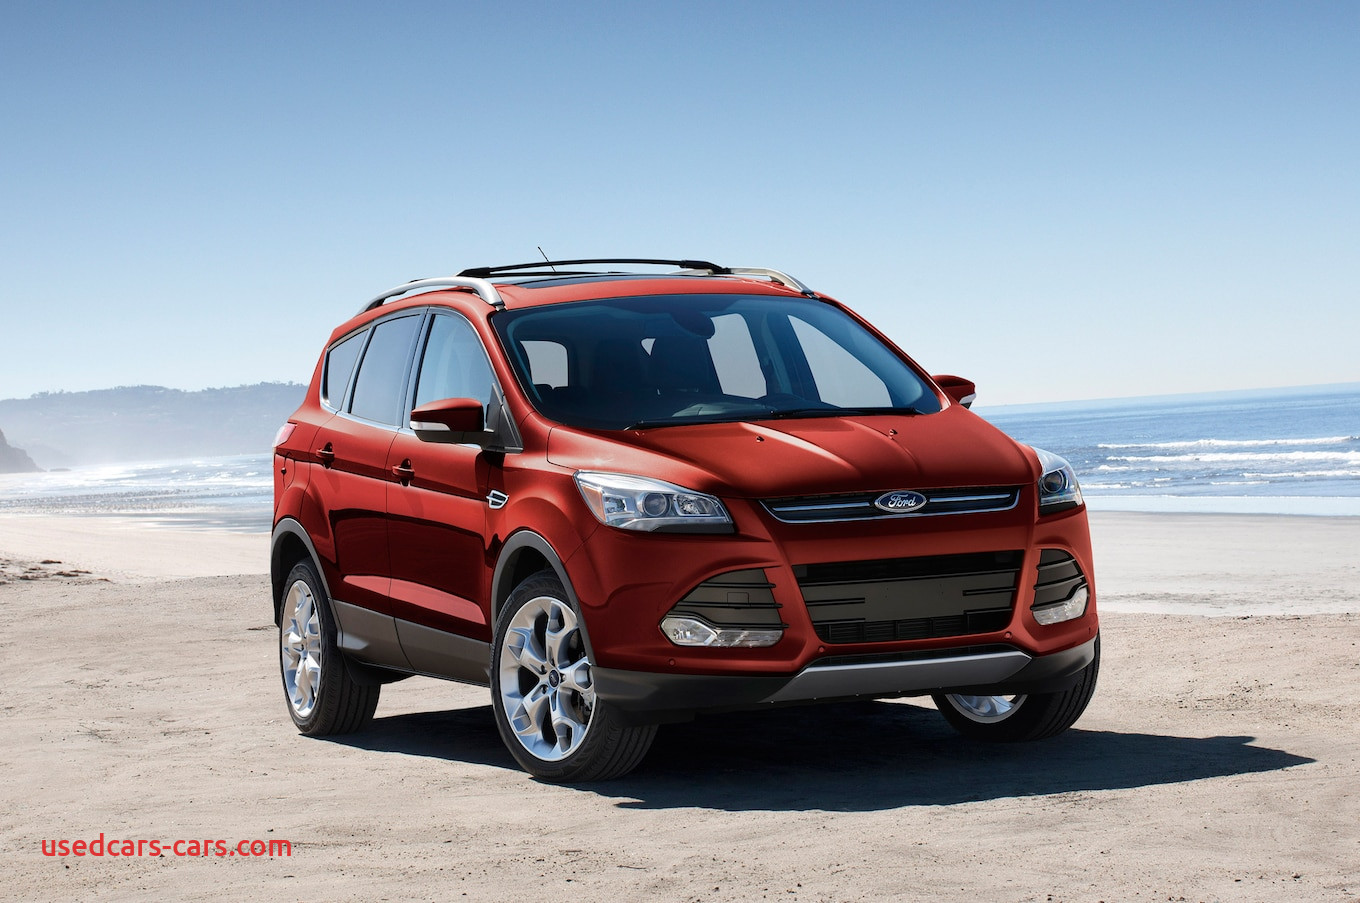 2015 ford Escape Luxury 2015 ford Escape Reviews and Rating Motor Trend